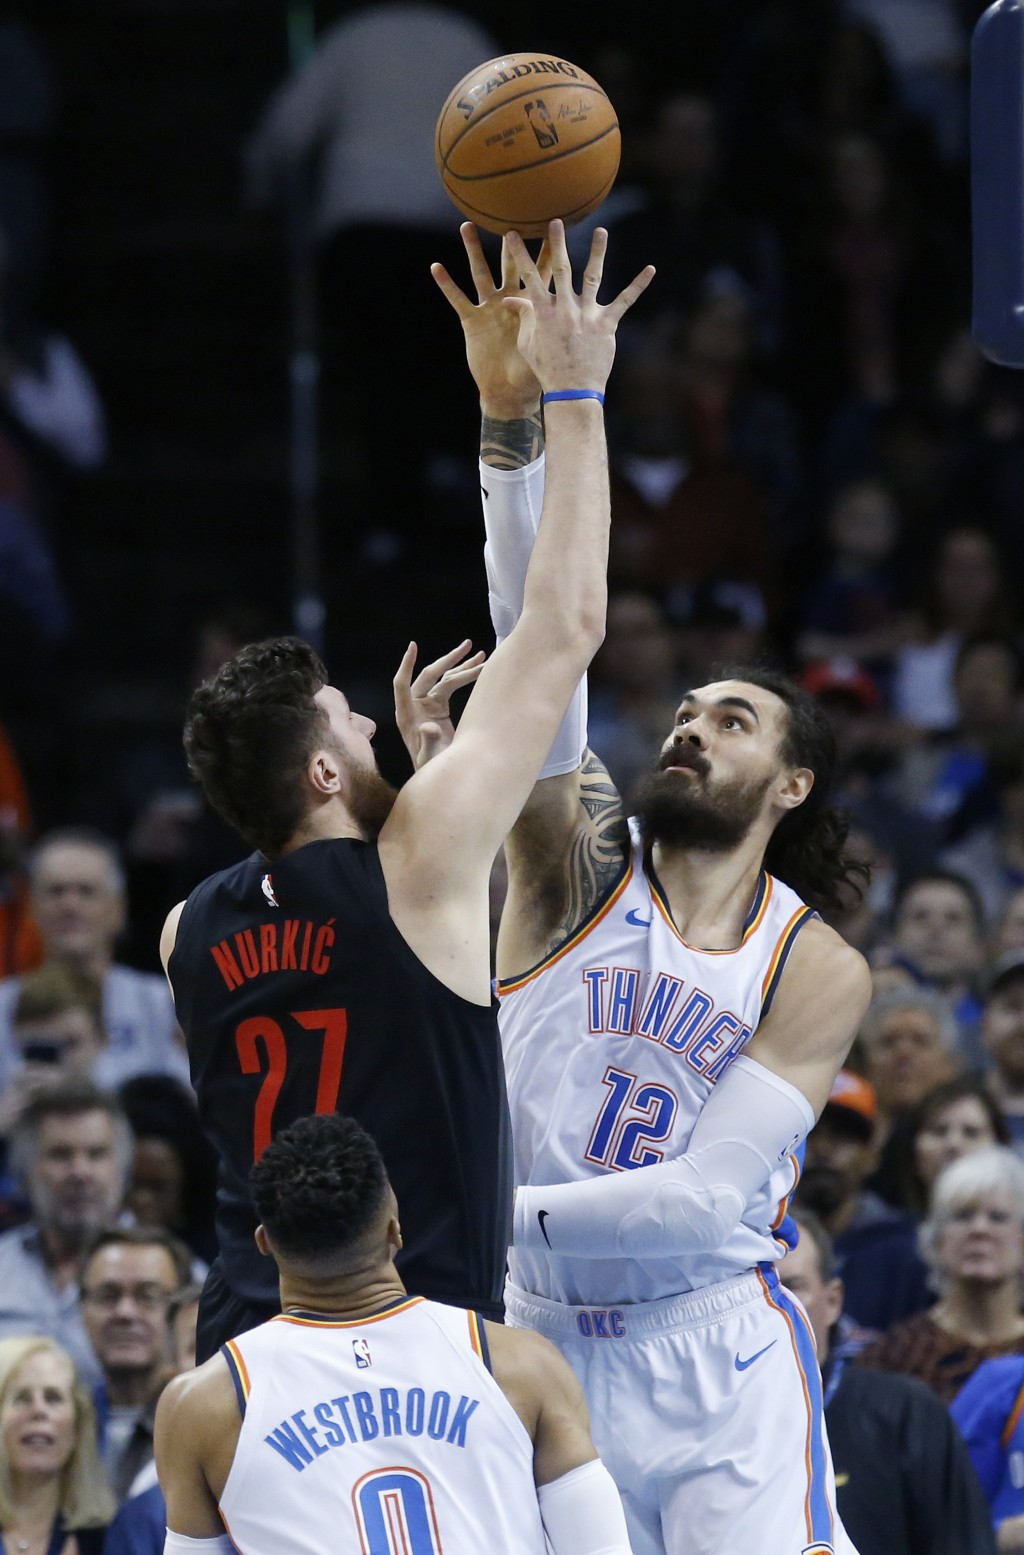 Portland Trail Blazers center Jusuf Nurkic (27) shoots as Oklahoma City Thunder center Steven Adams (12) defends in the first half of an NBA basketbal...